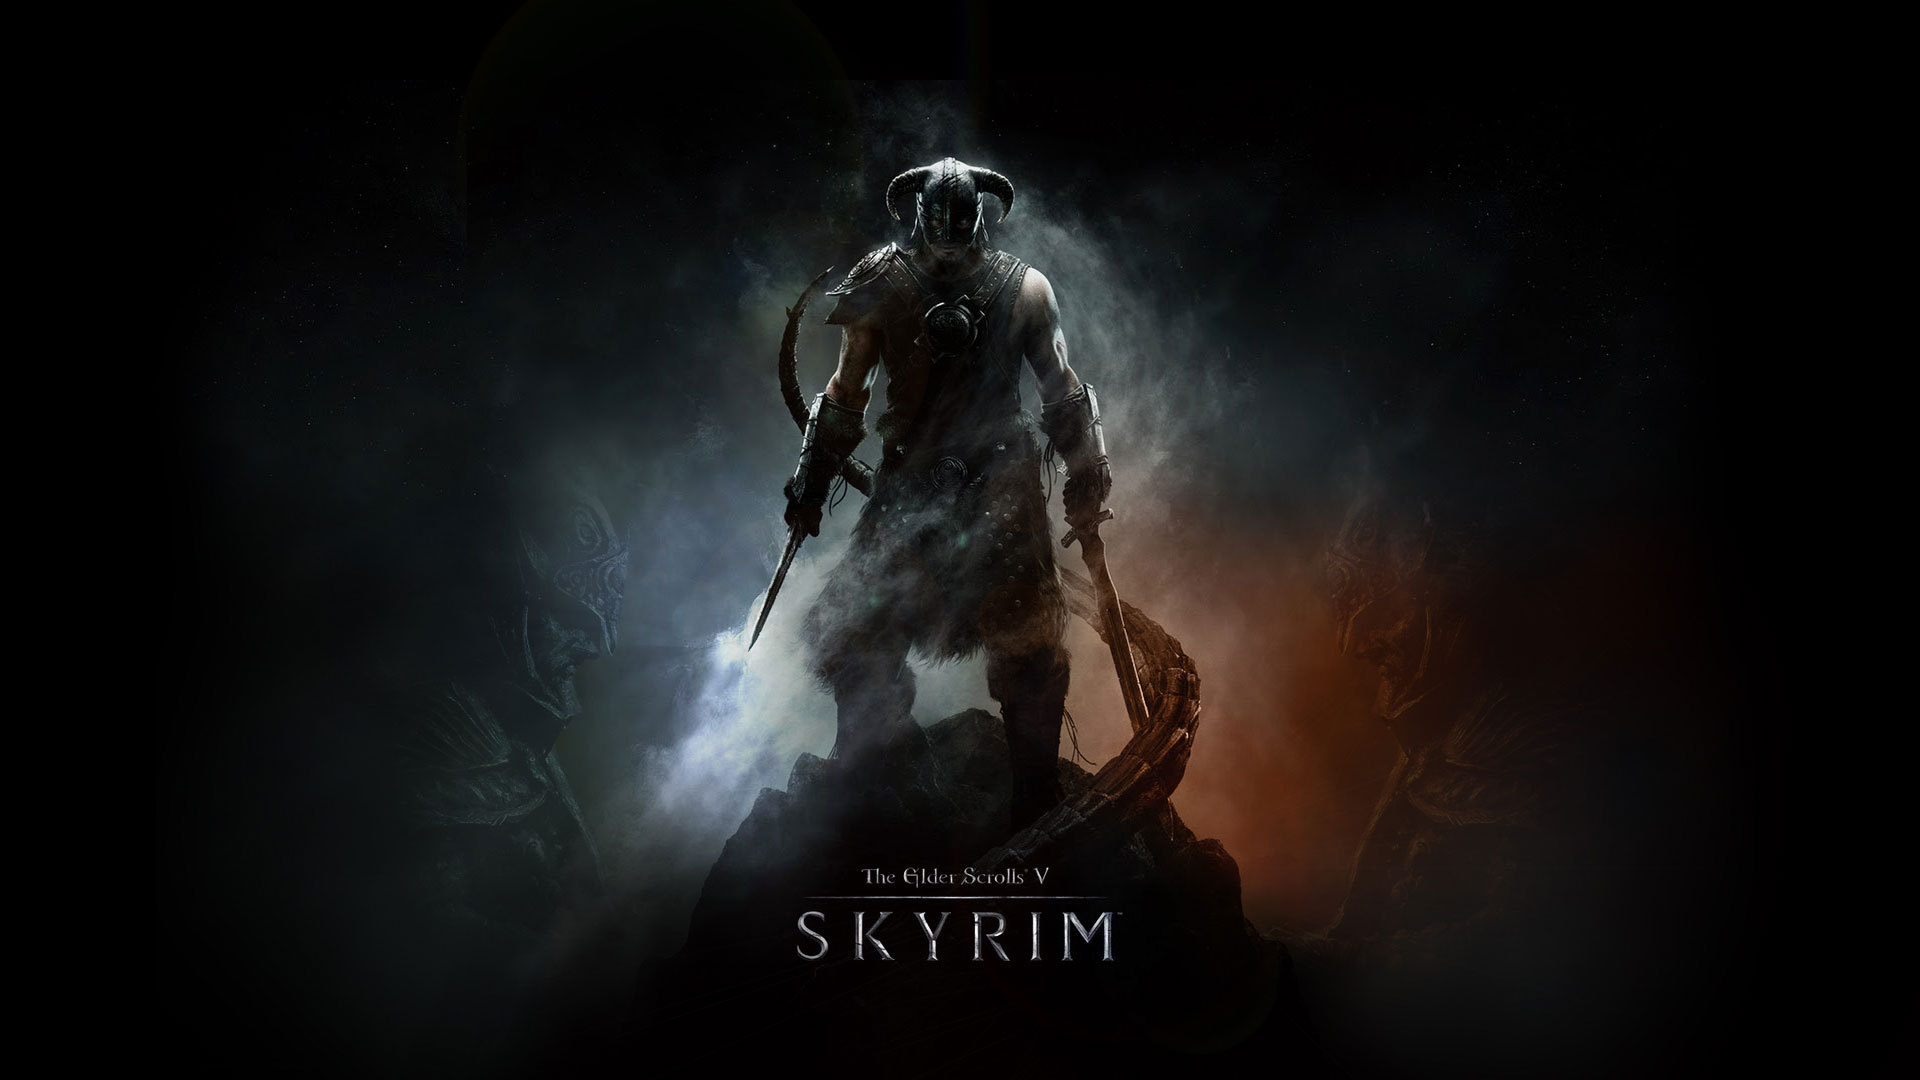 Wallpaper The Elder Scrolls V: Skyrim warrior on top